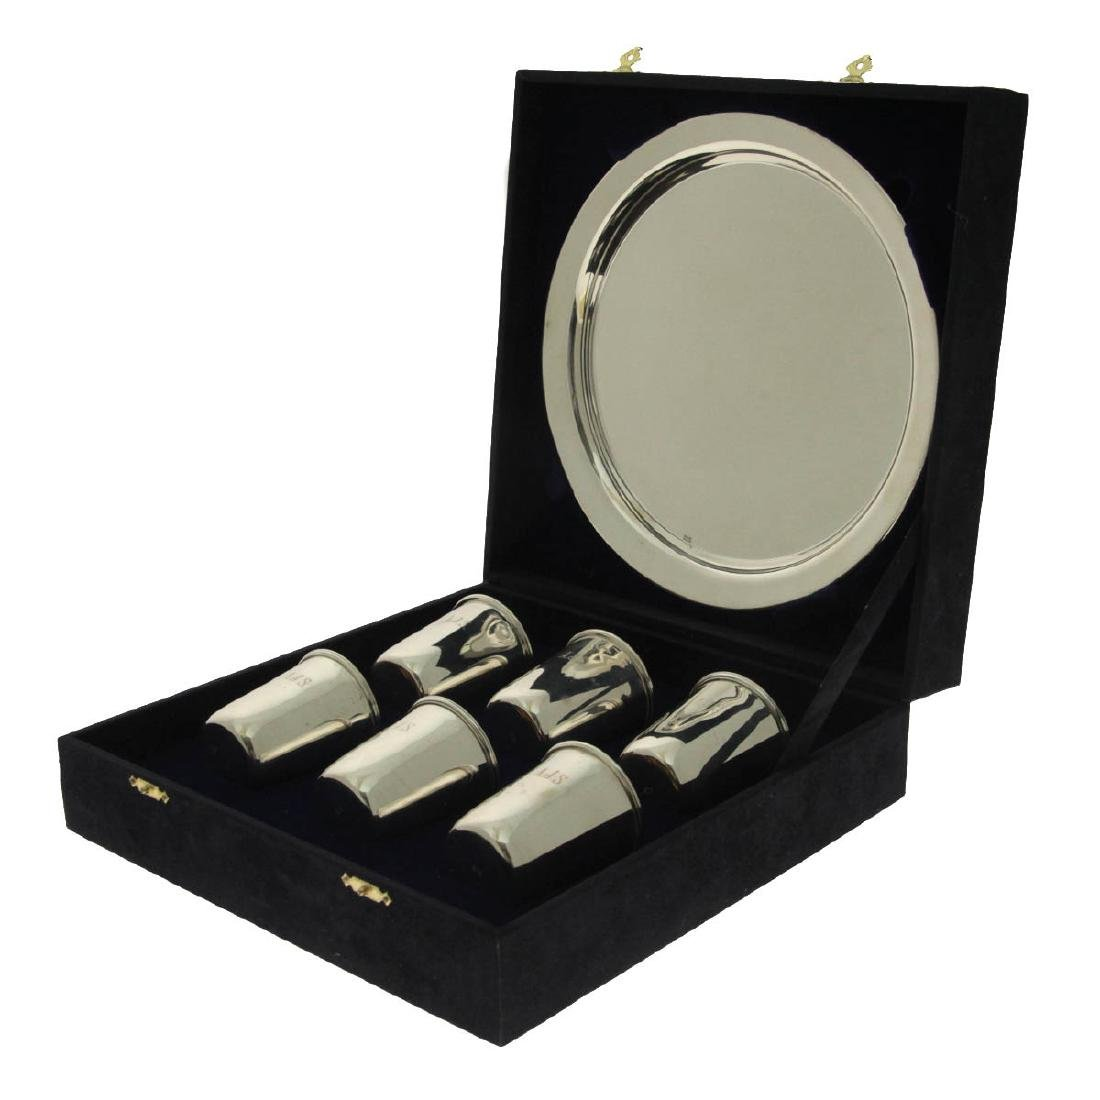 Set of Six Sterling Silver Cups on Tray, Alberto Joesph